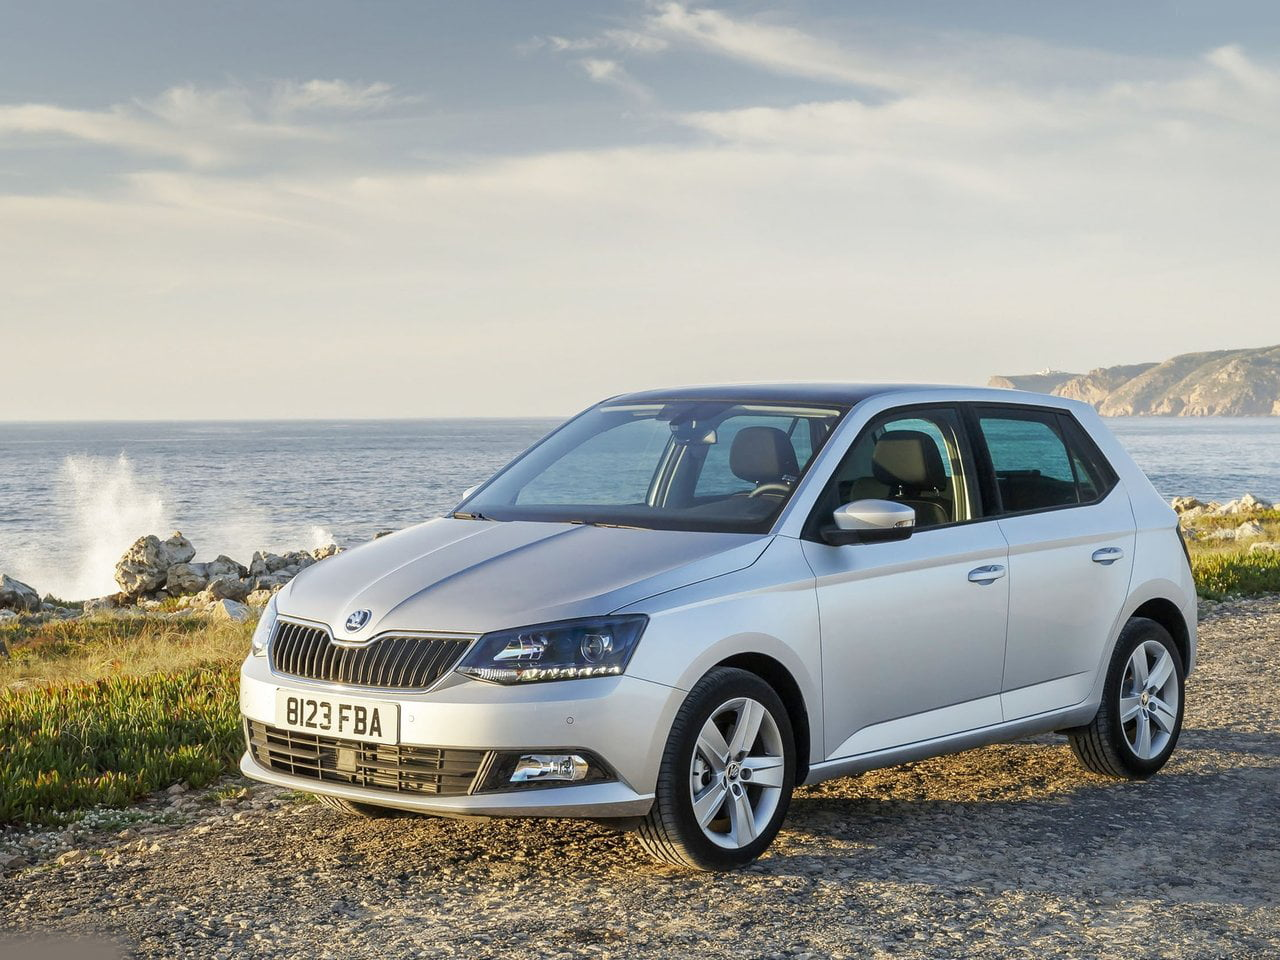 new skoda fabia india launch pics features price details. Black Bedroom Furniture Sets. Home Design Ideas